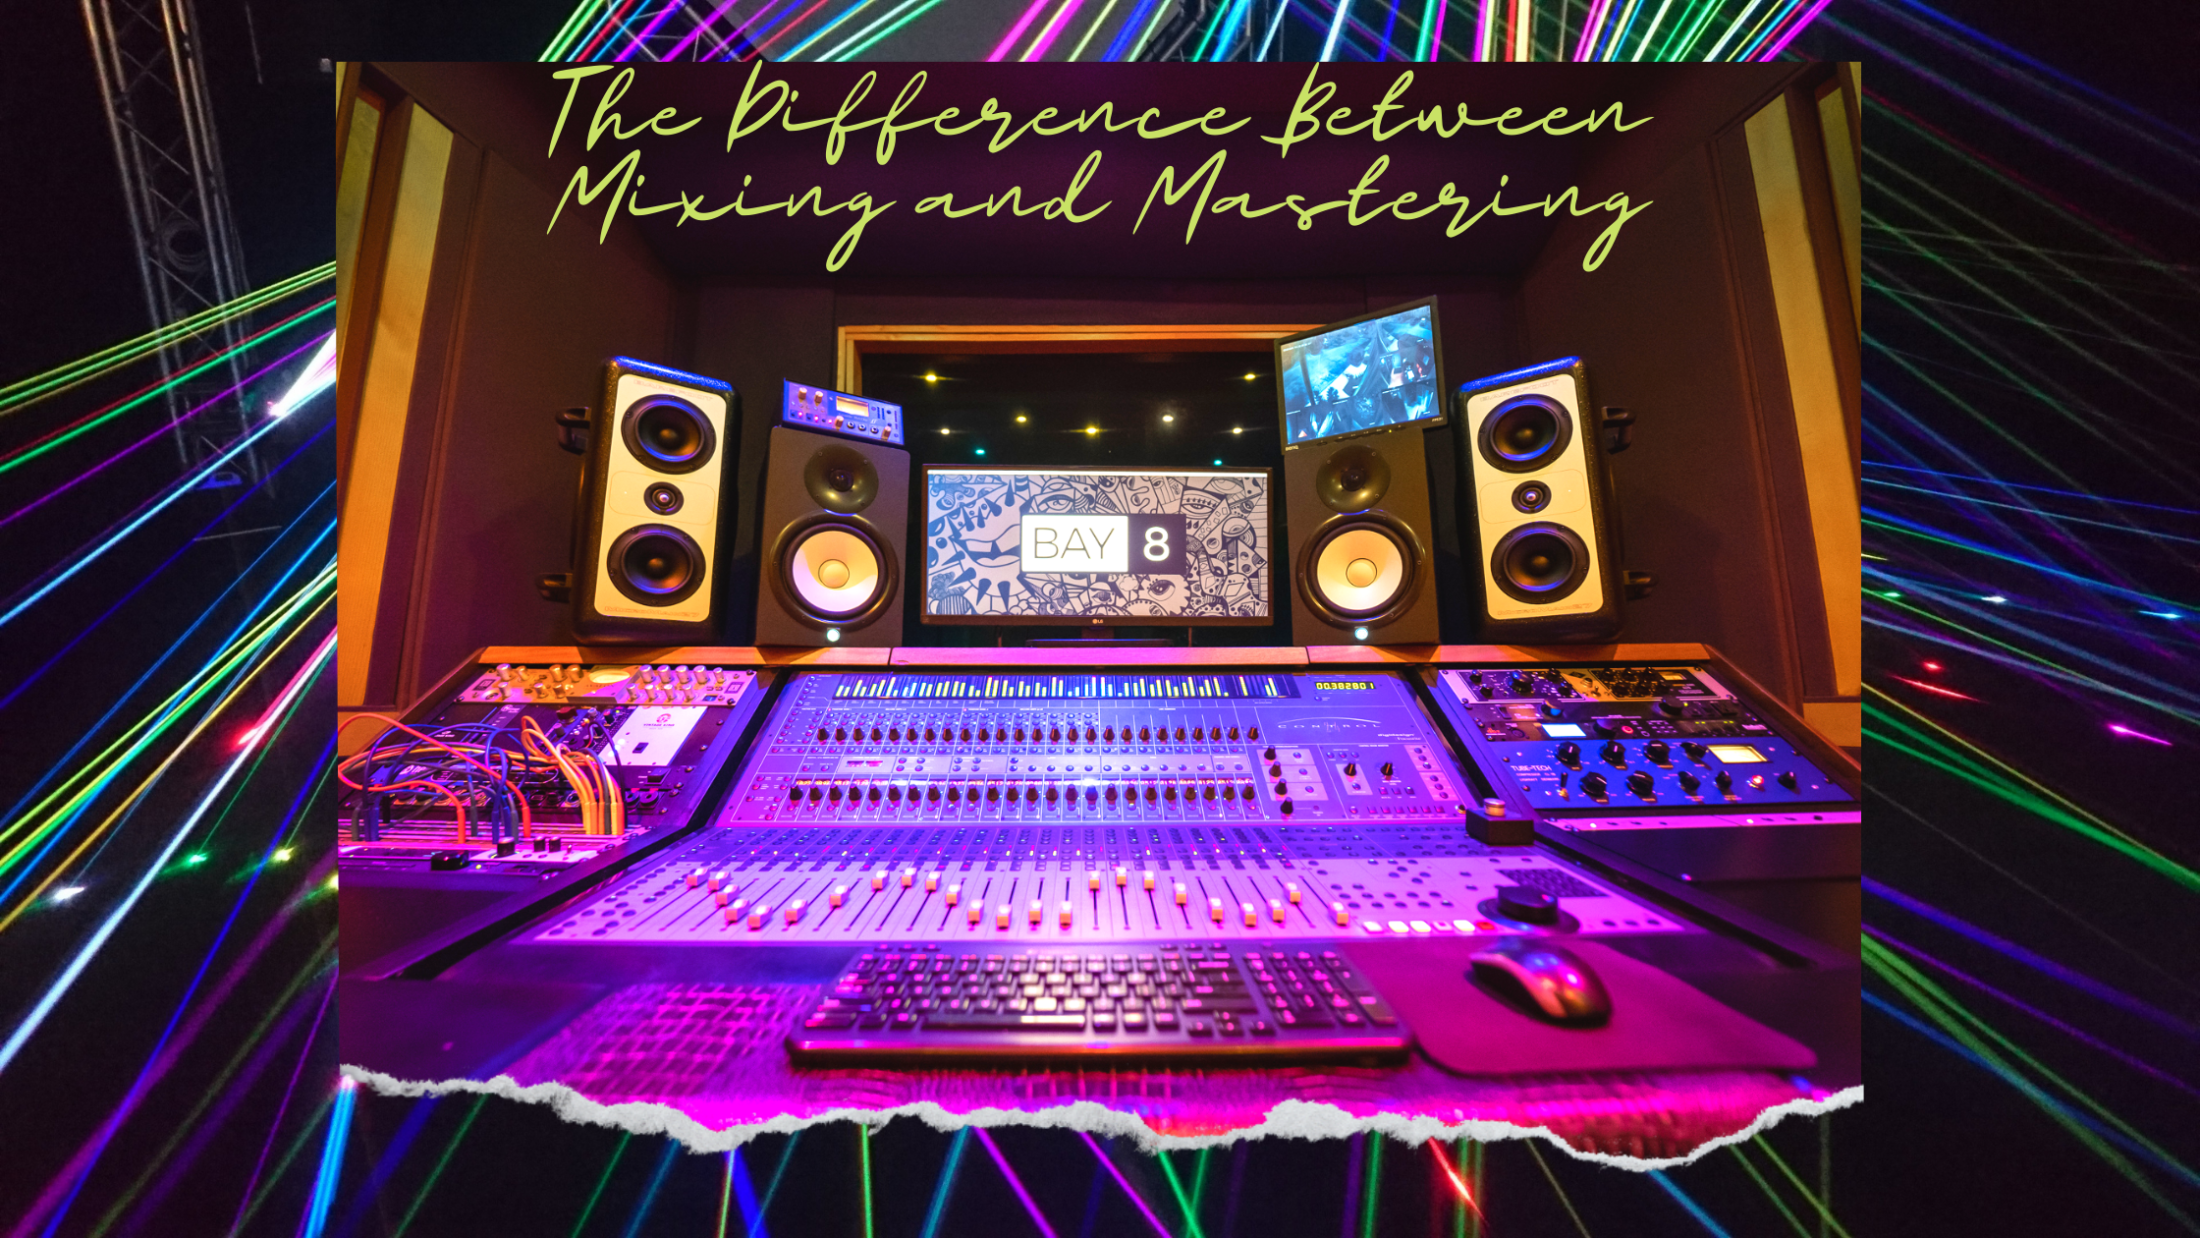 Bay Eight Recording Studios The Difference Between Mixing and Mastering 2